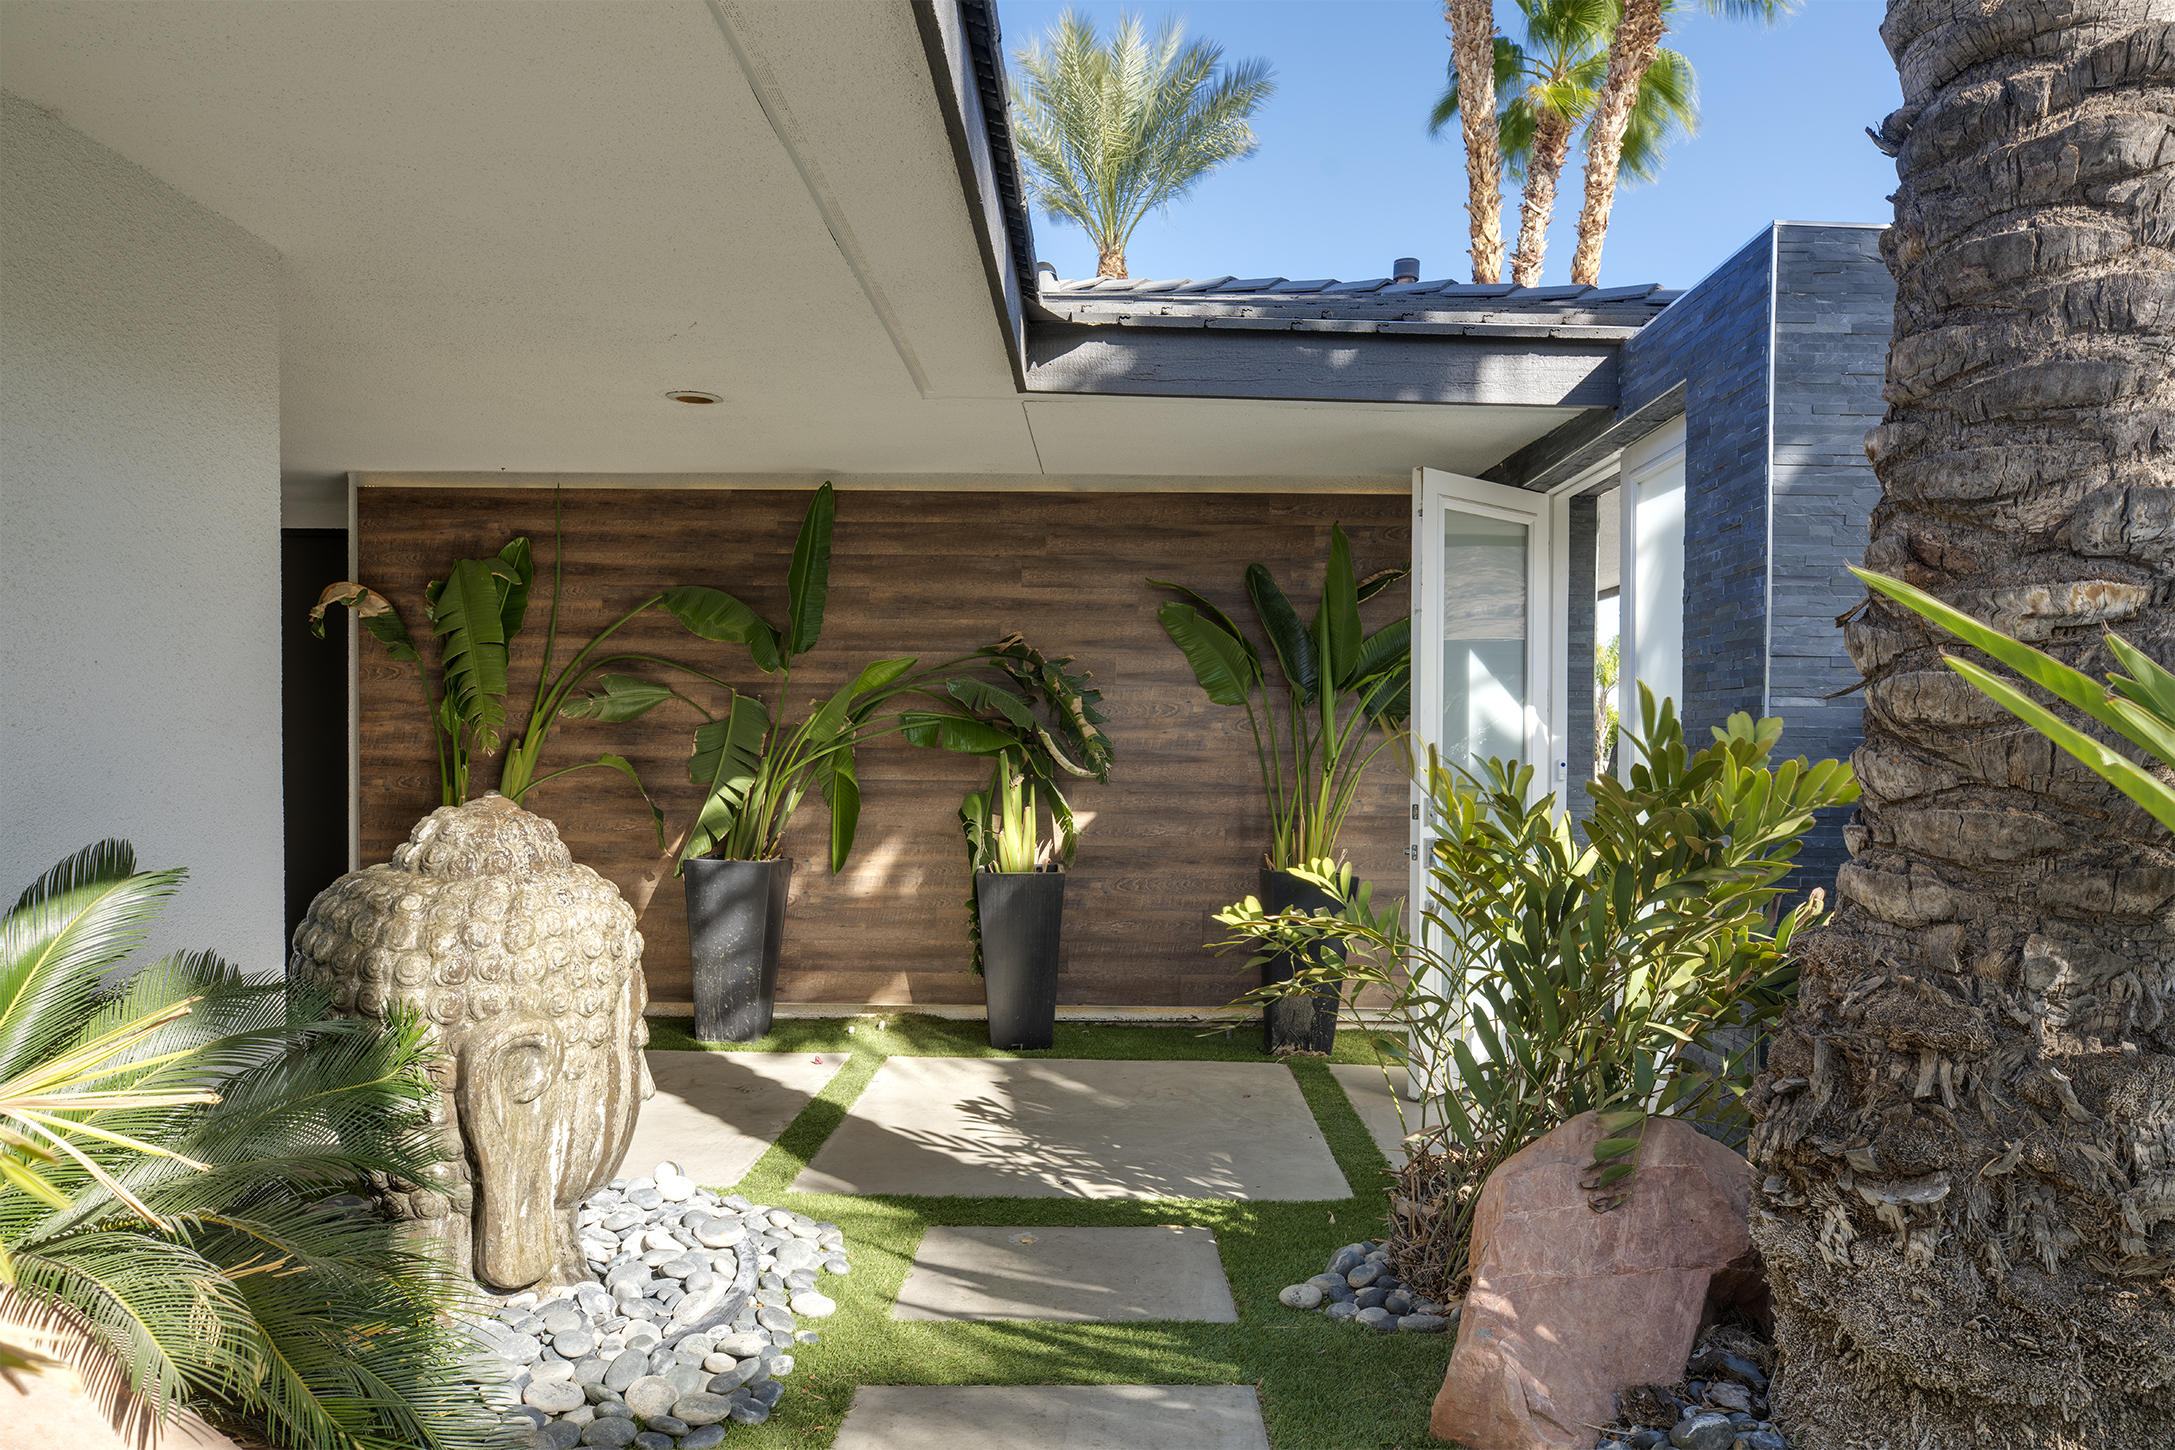 1031 Andreas Palms Drive, Palm Springs, California 92264, 3 Bedrooms Bedrooms, ,4 BathroomsBathrooms,Residential,For Sale,1031 Andreas Palms Drive,219034790